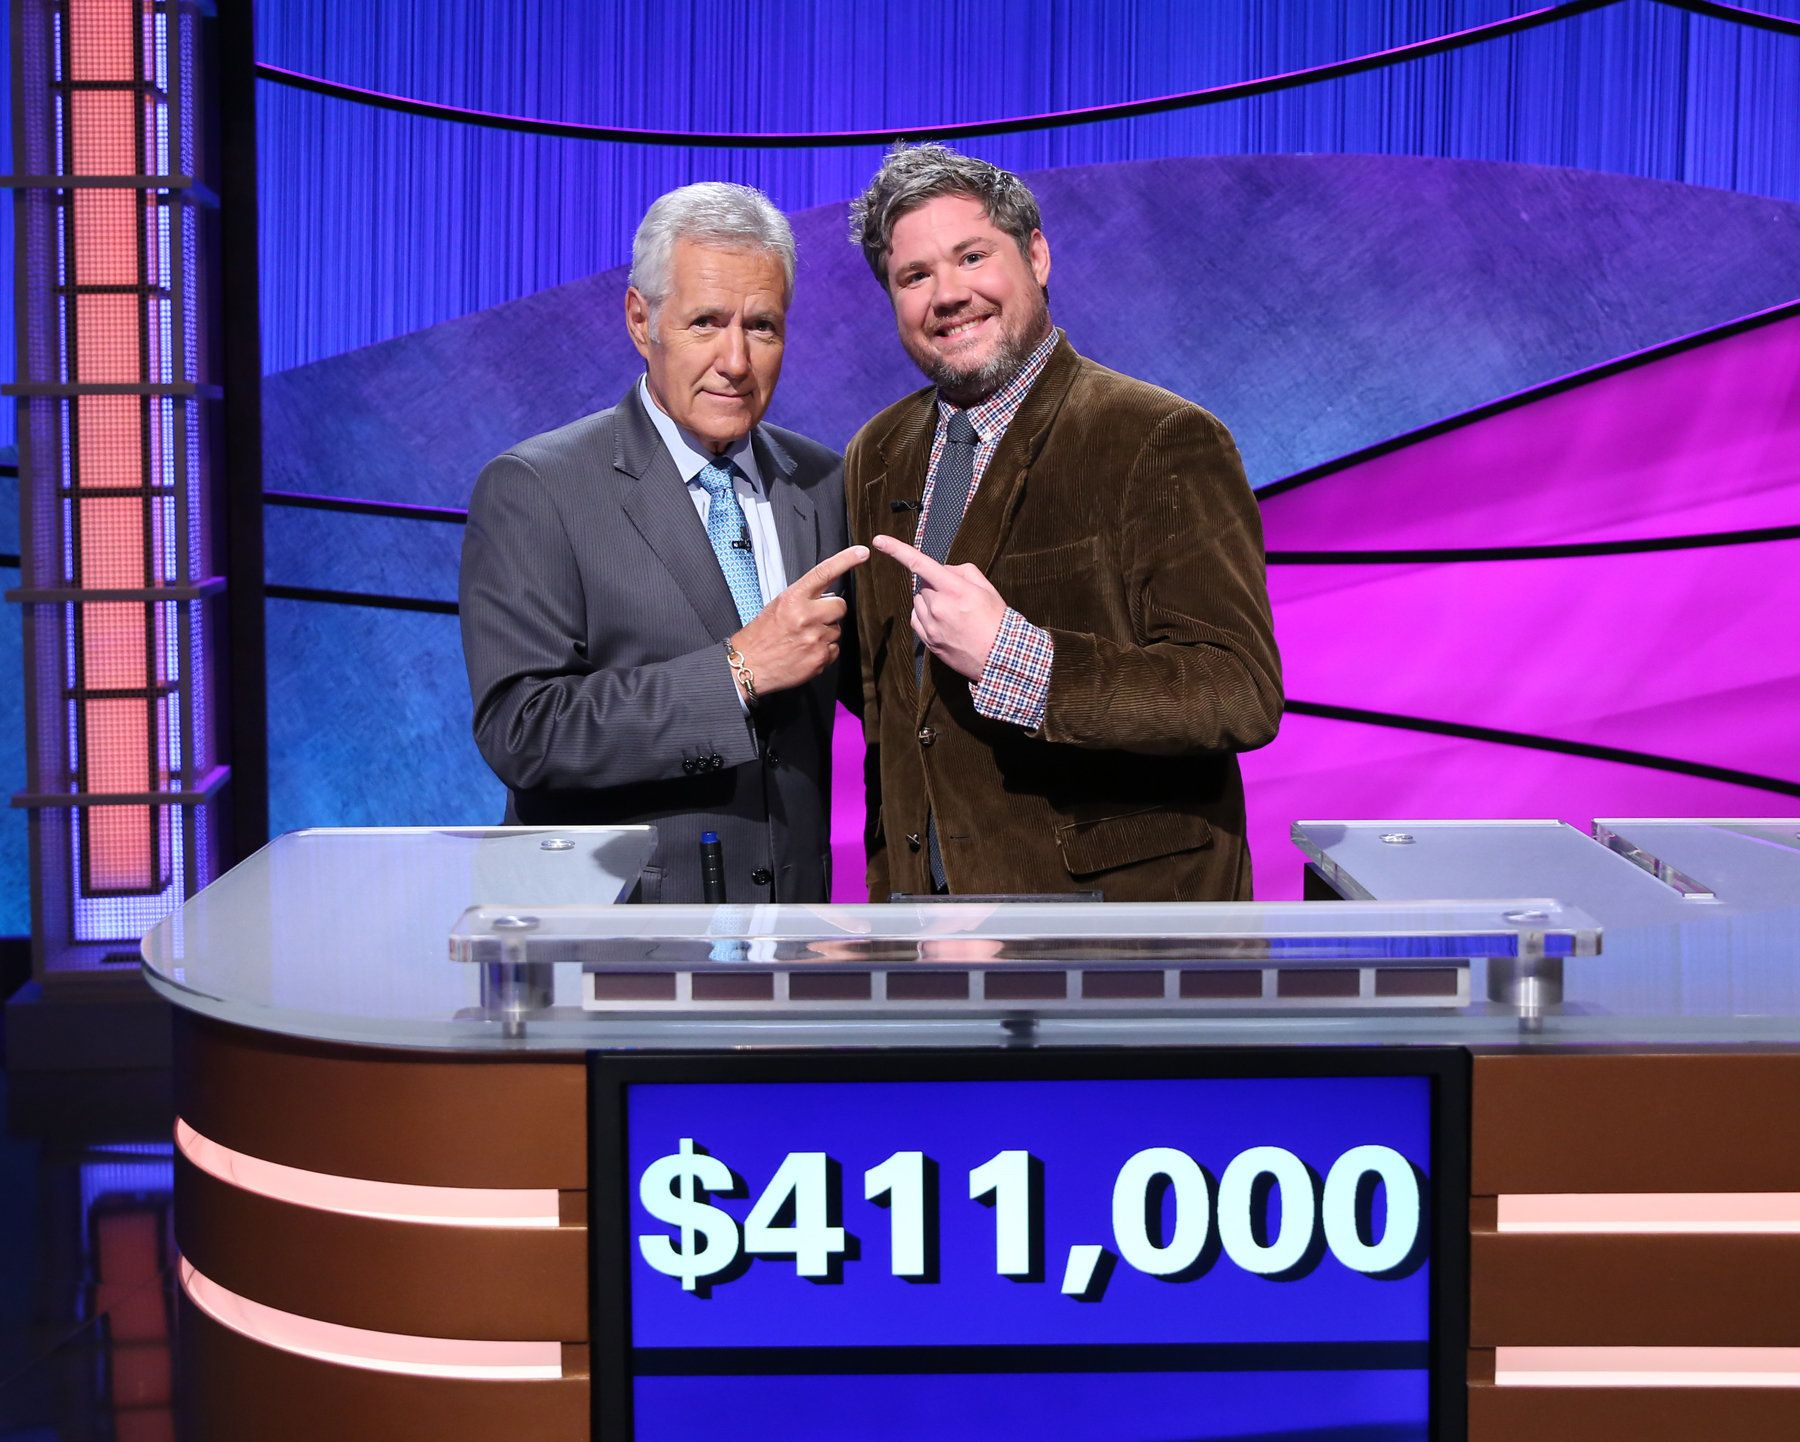 Alex Trebek and Austin Tyler Rogers on the set of Jeopardy